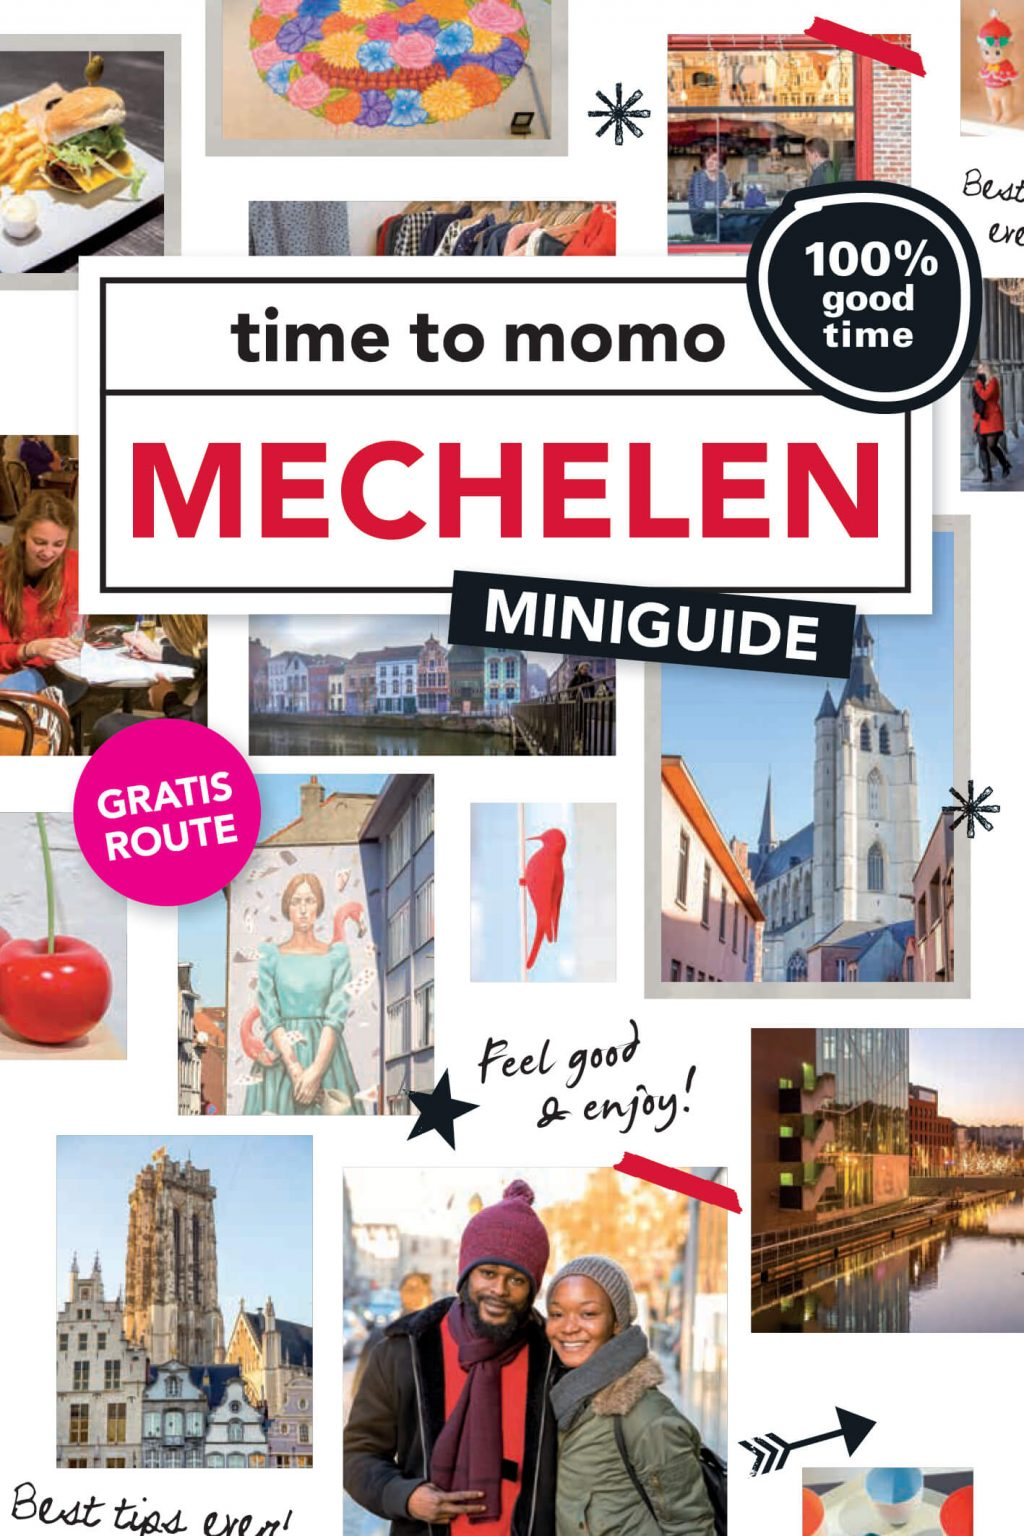 timetomomo - Mechelen - Belgie